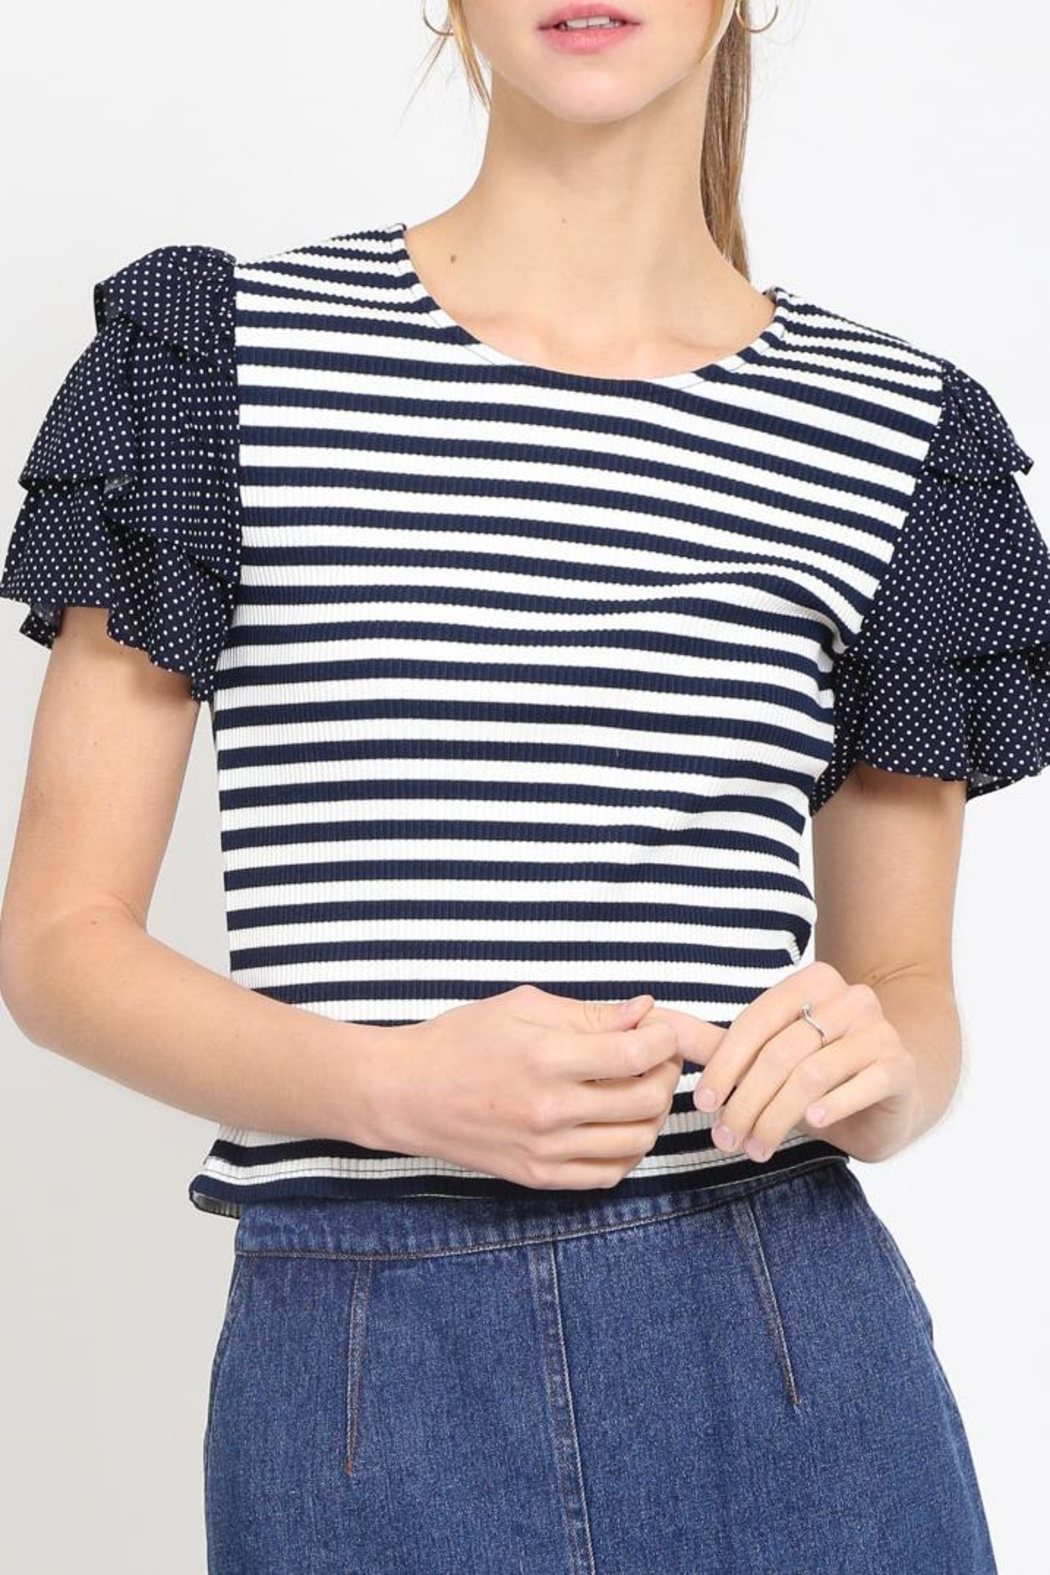 Movint Cropped Ruffle Top - Main Image